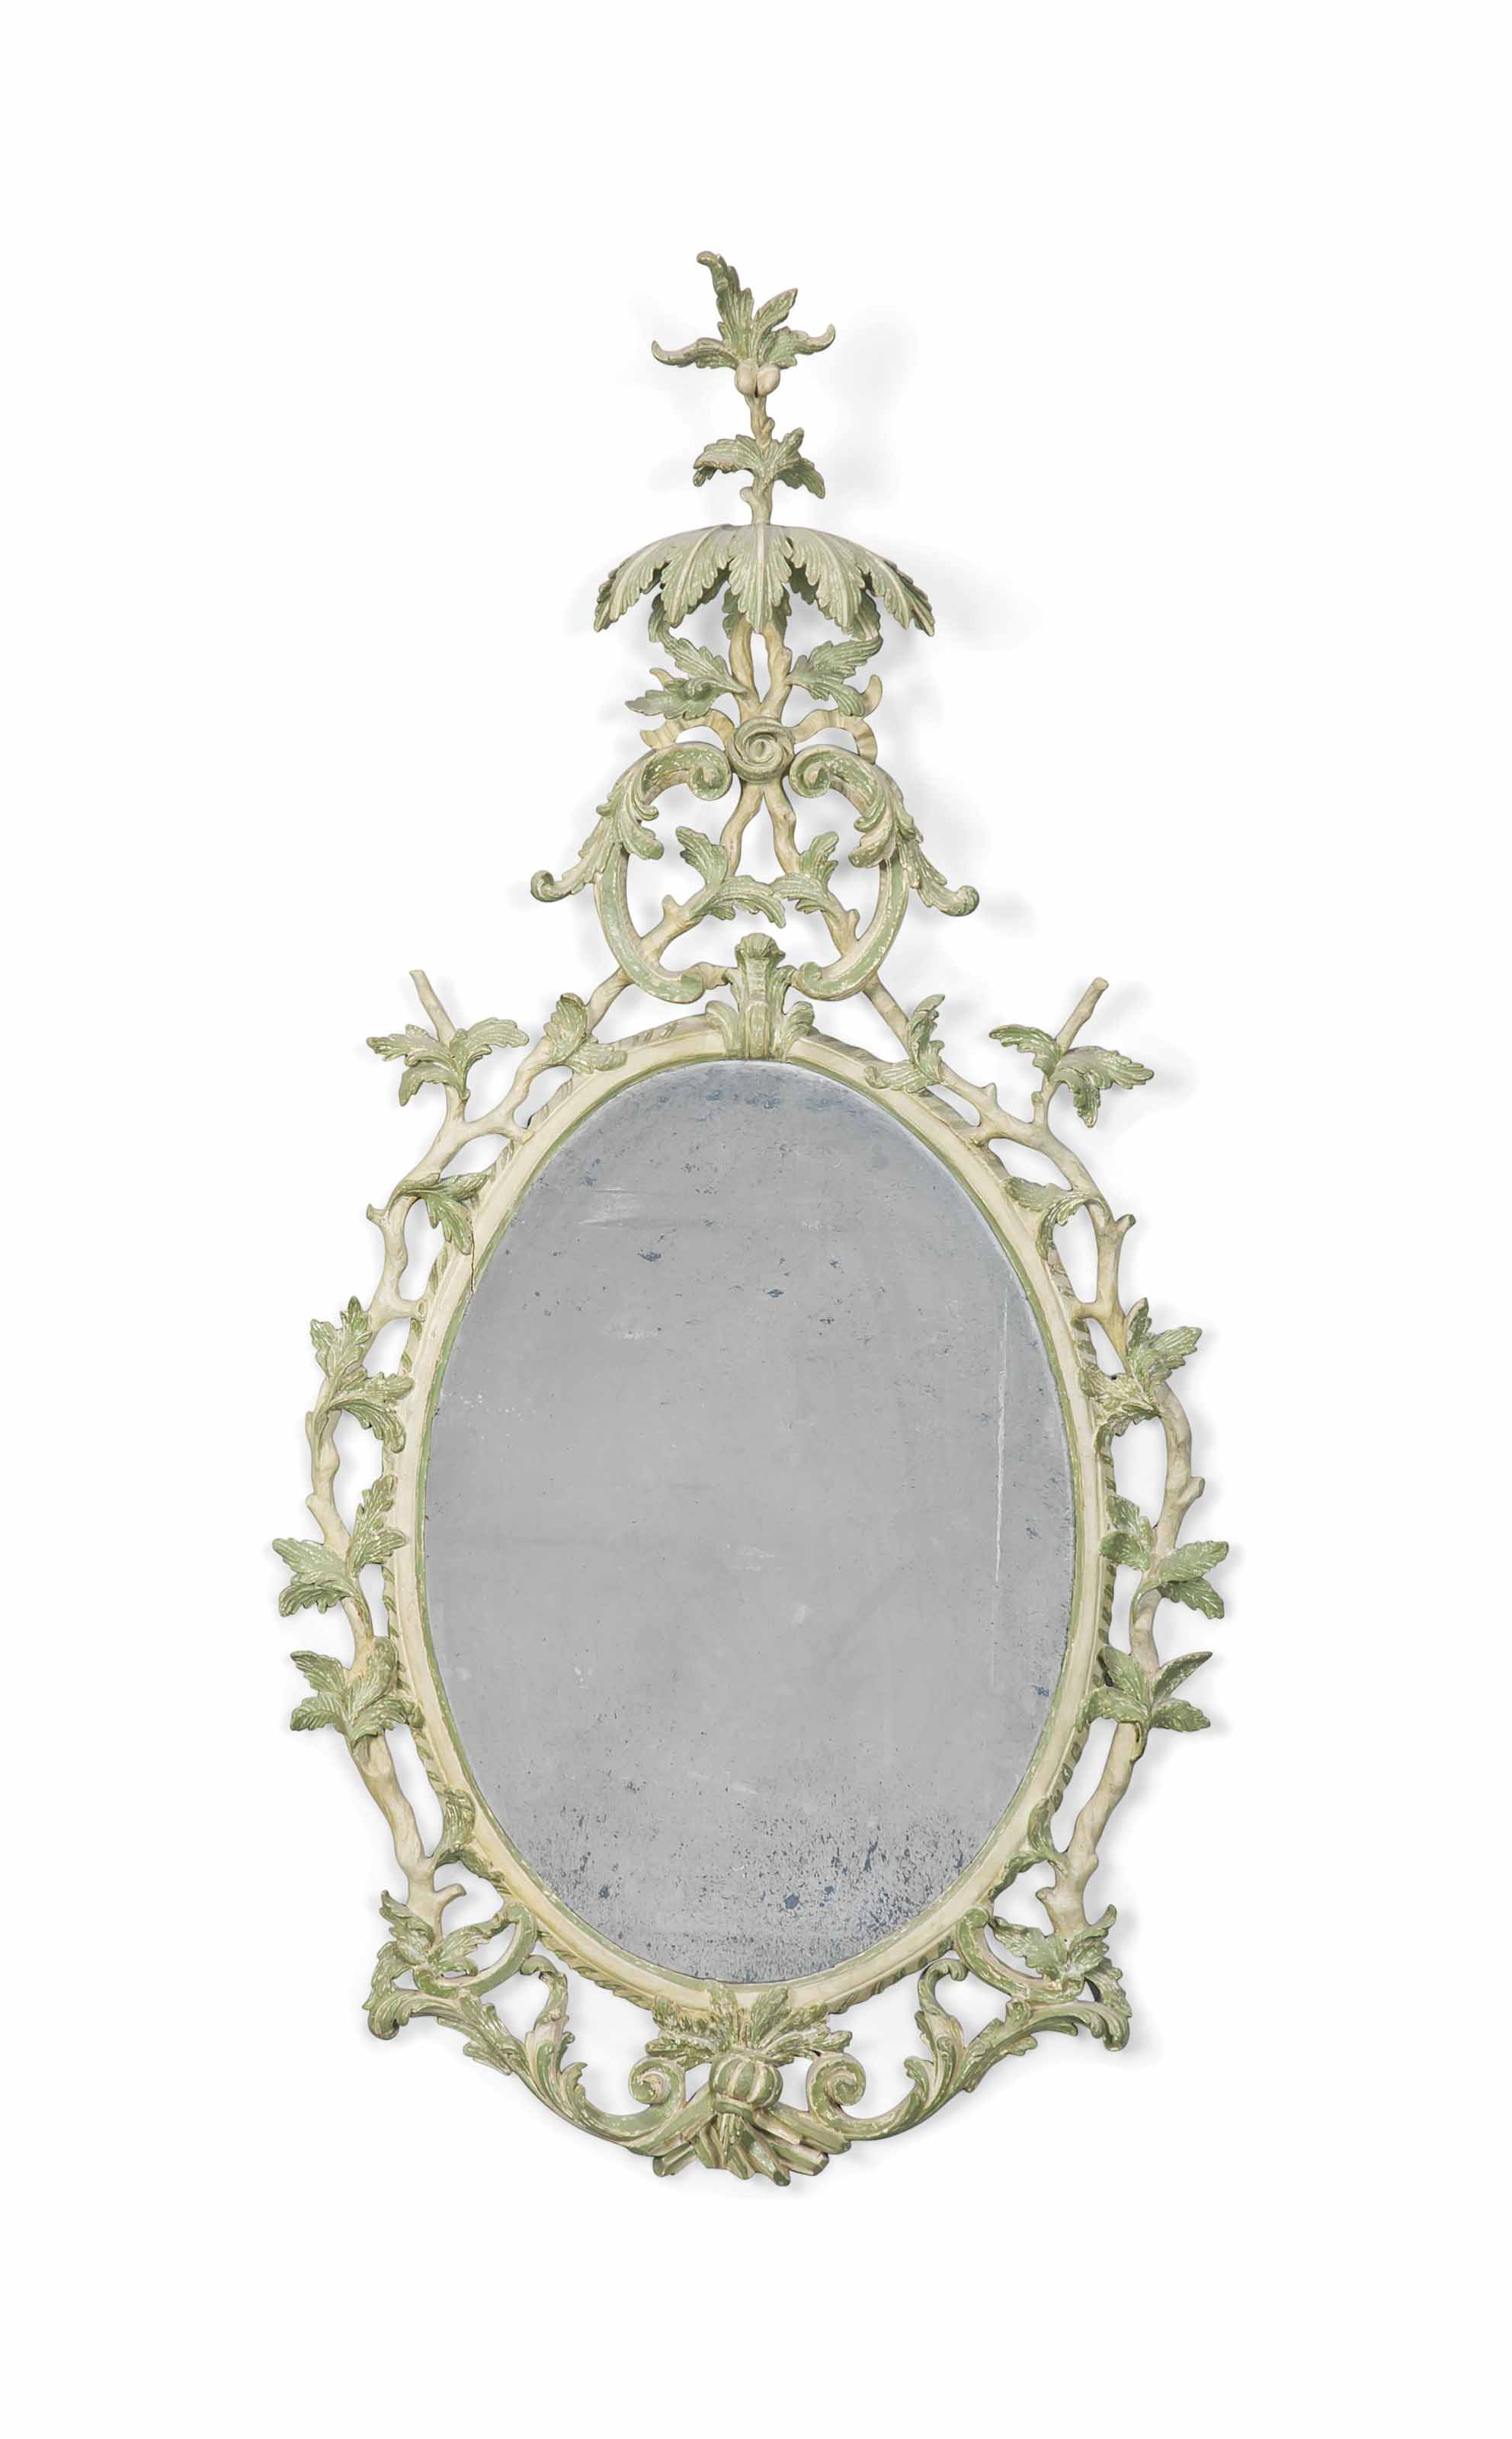 A GREY AND PALE-GREEN PAINTED MIRROR